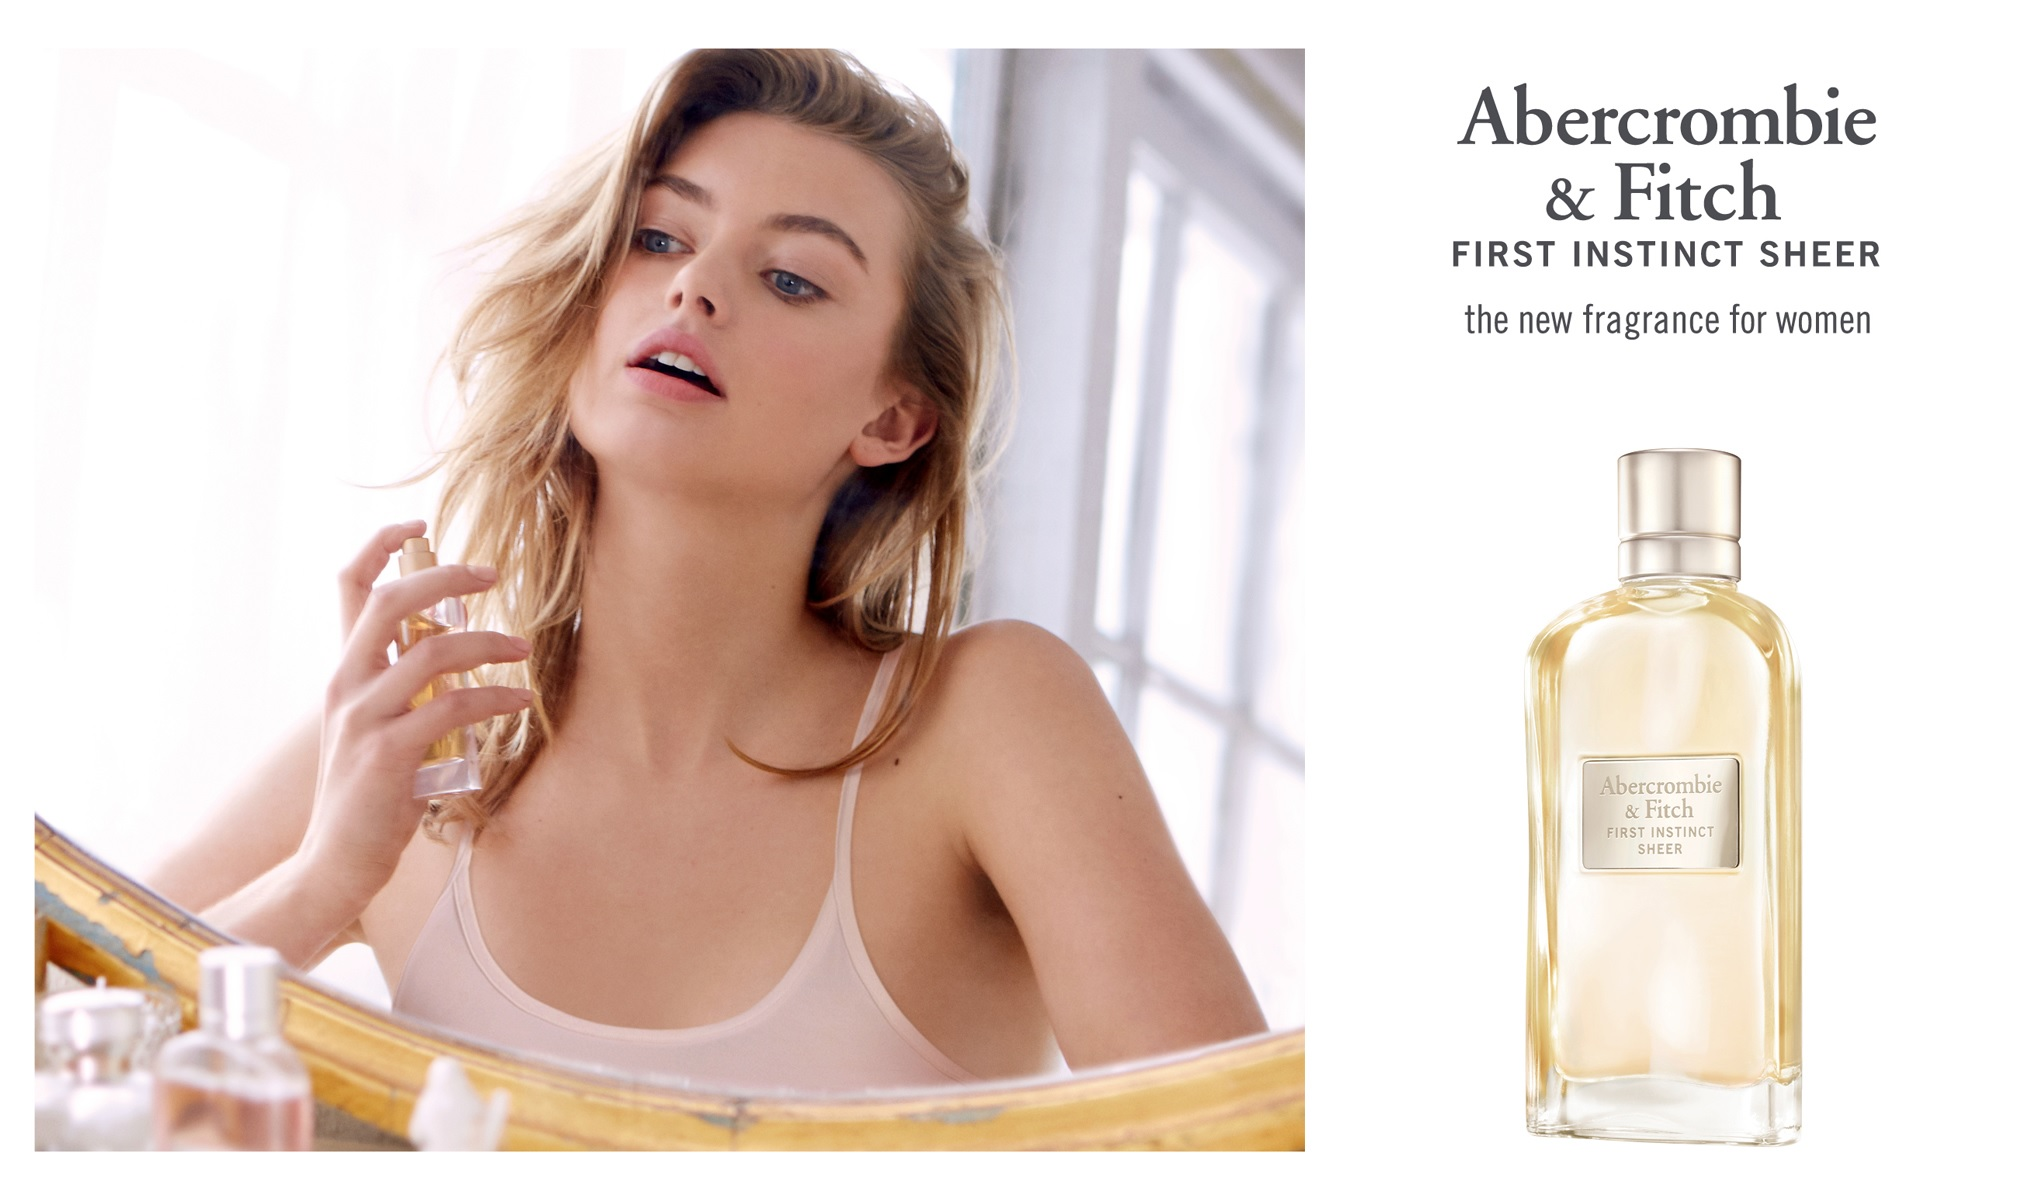 Abercrombie Fitch First Instinct Sheer